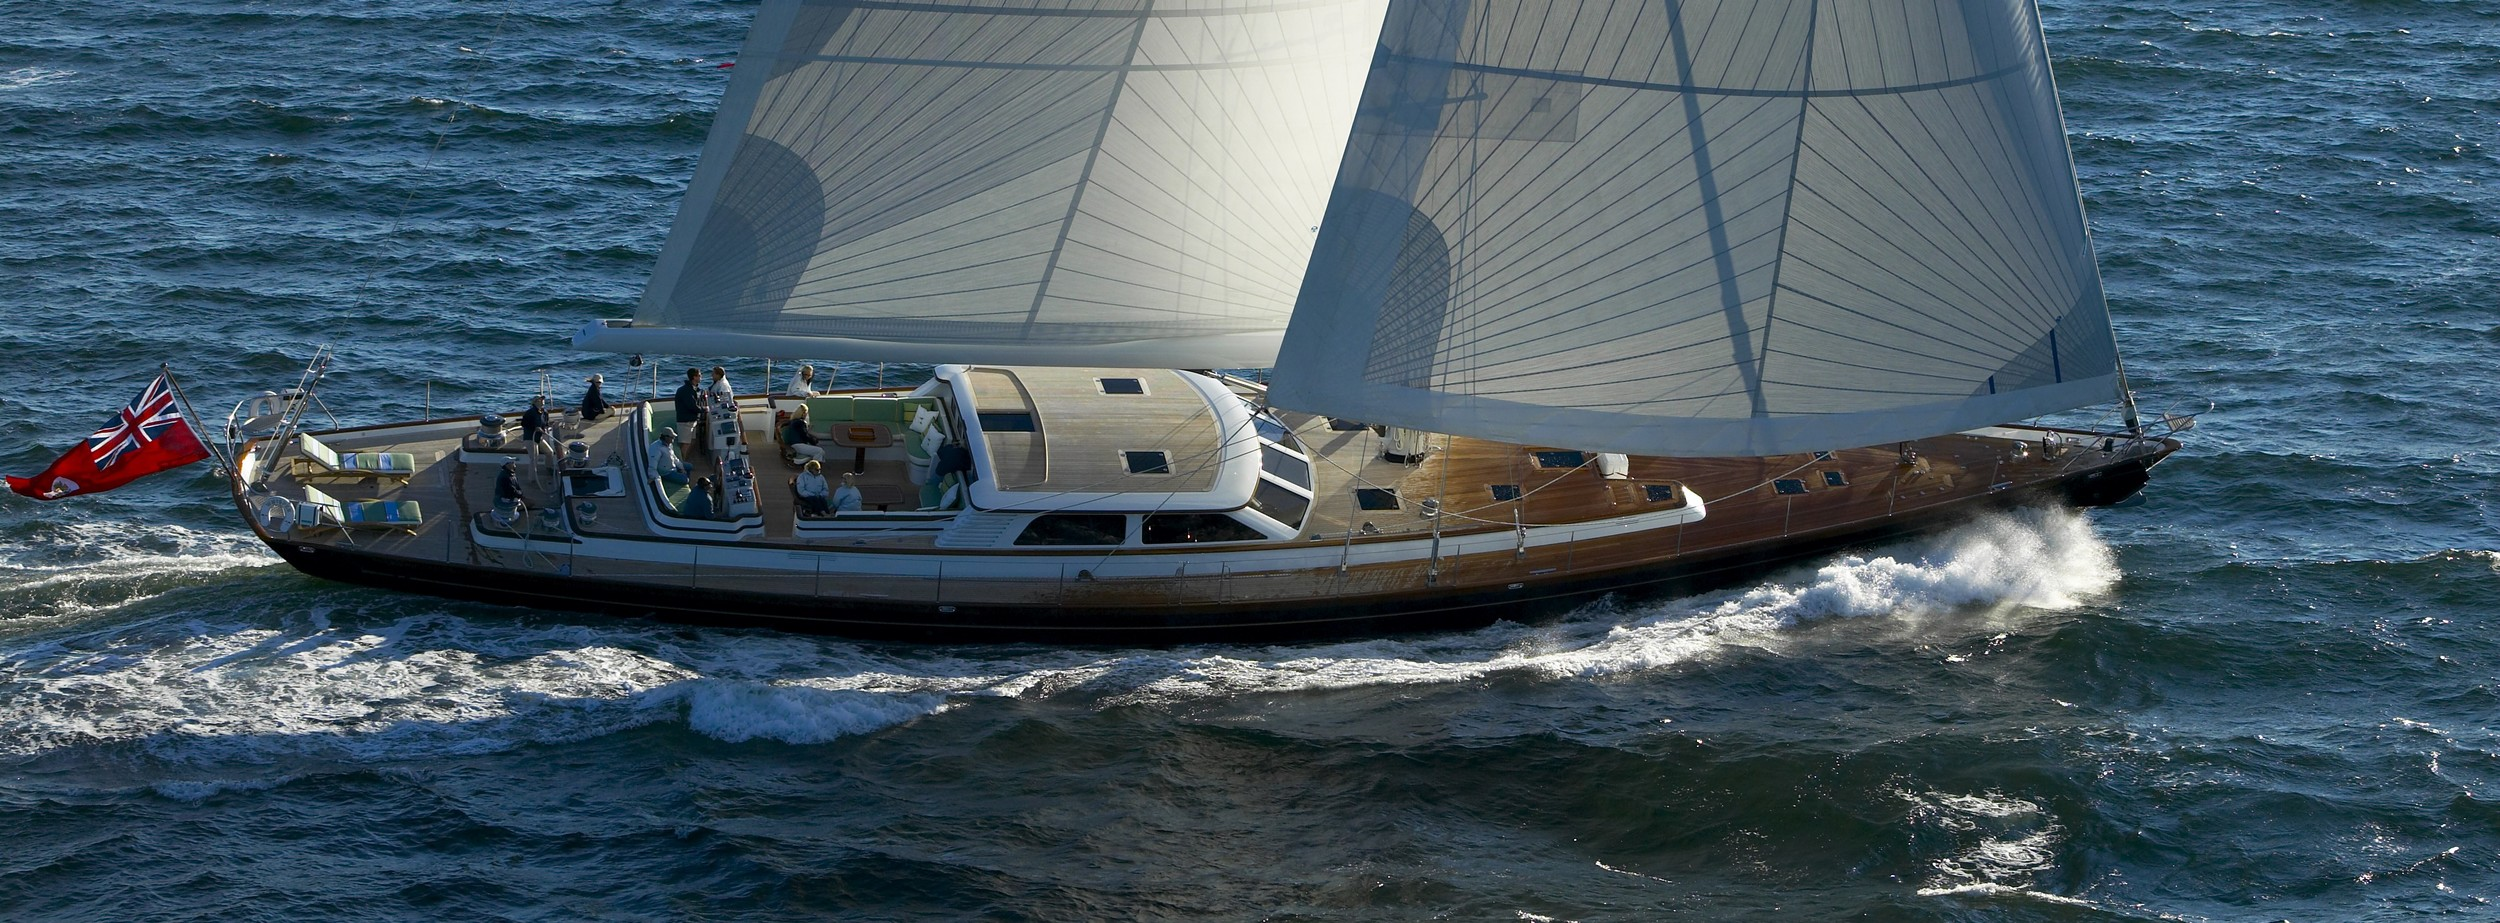 The 116-foot sloop Whisper is available for charter in New England this summer.